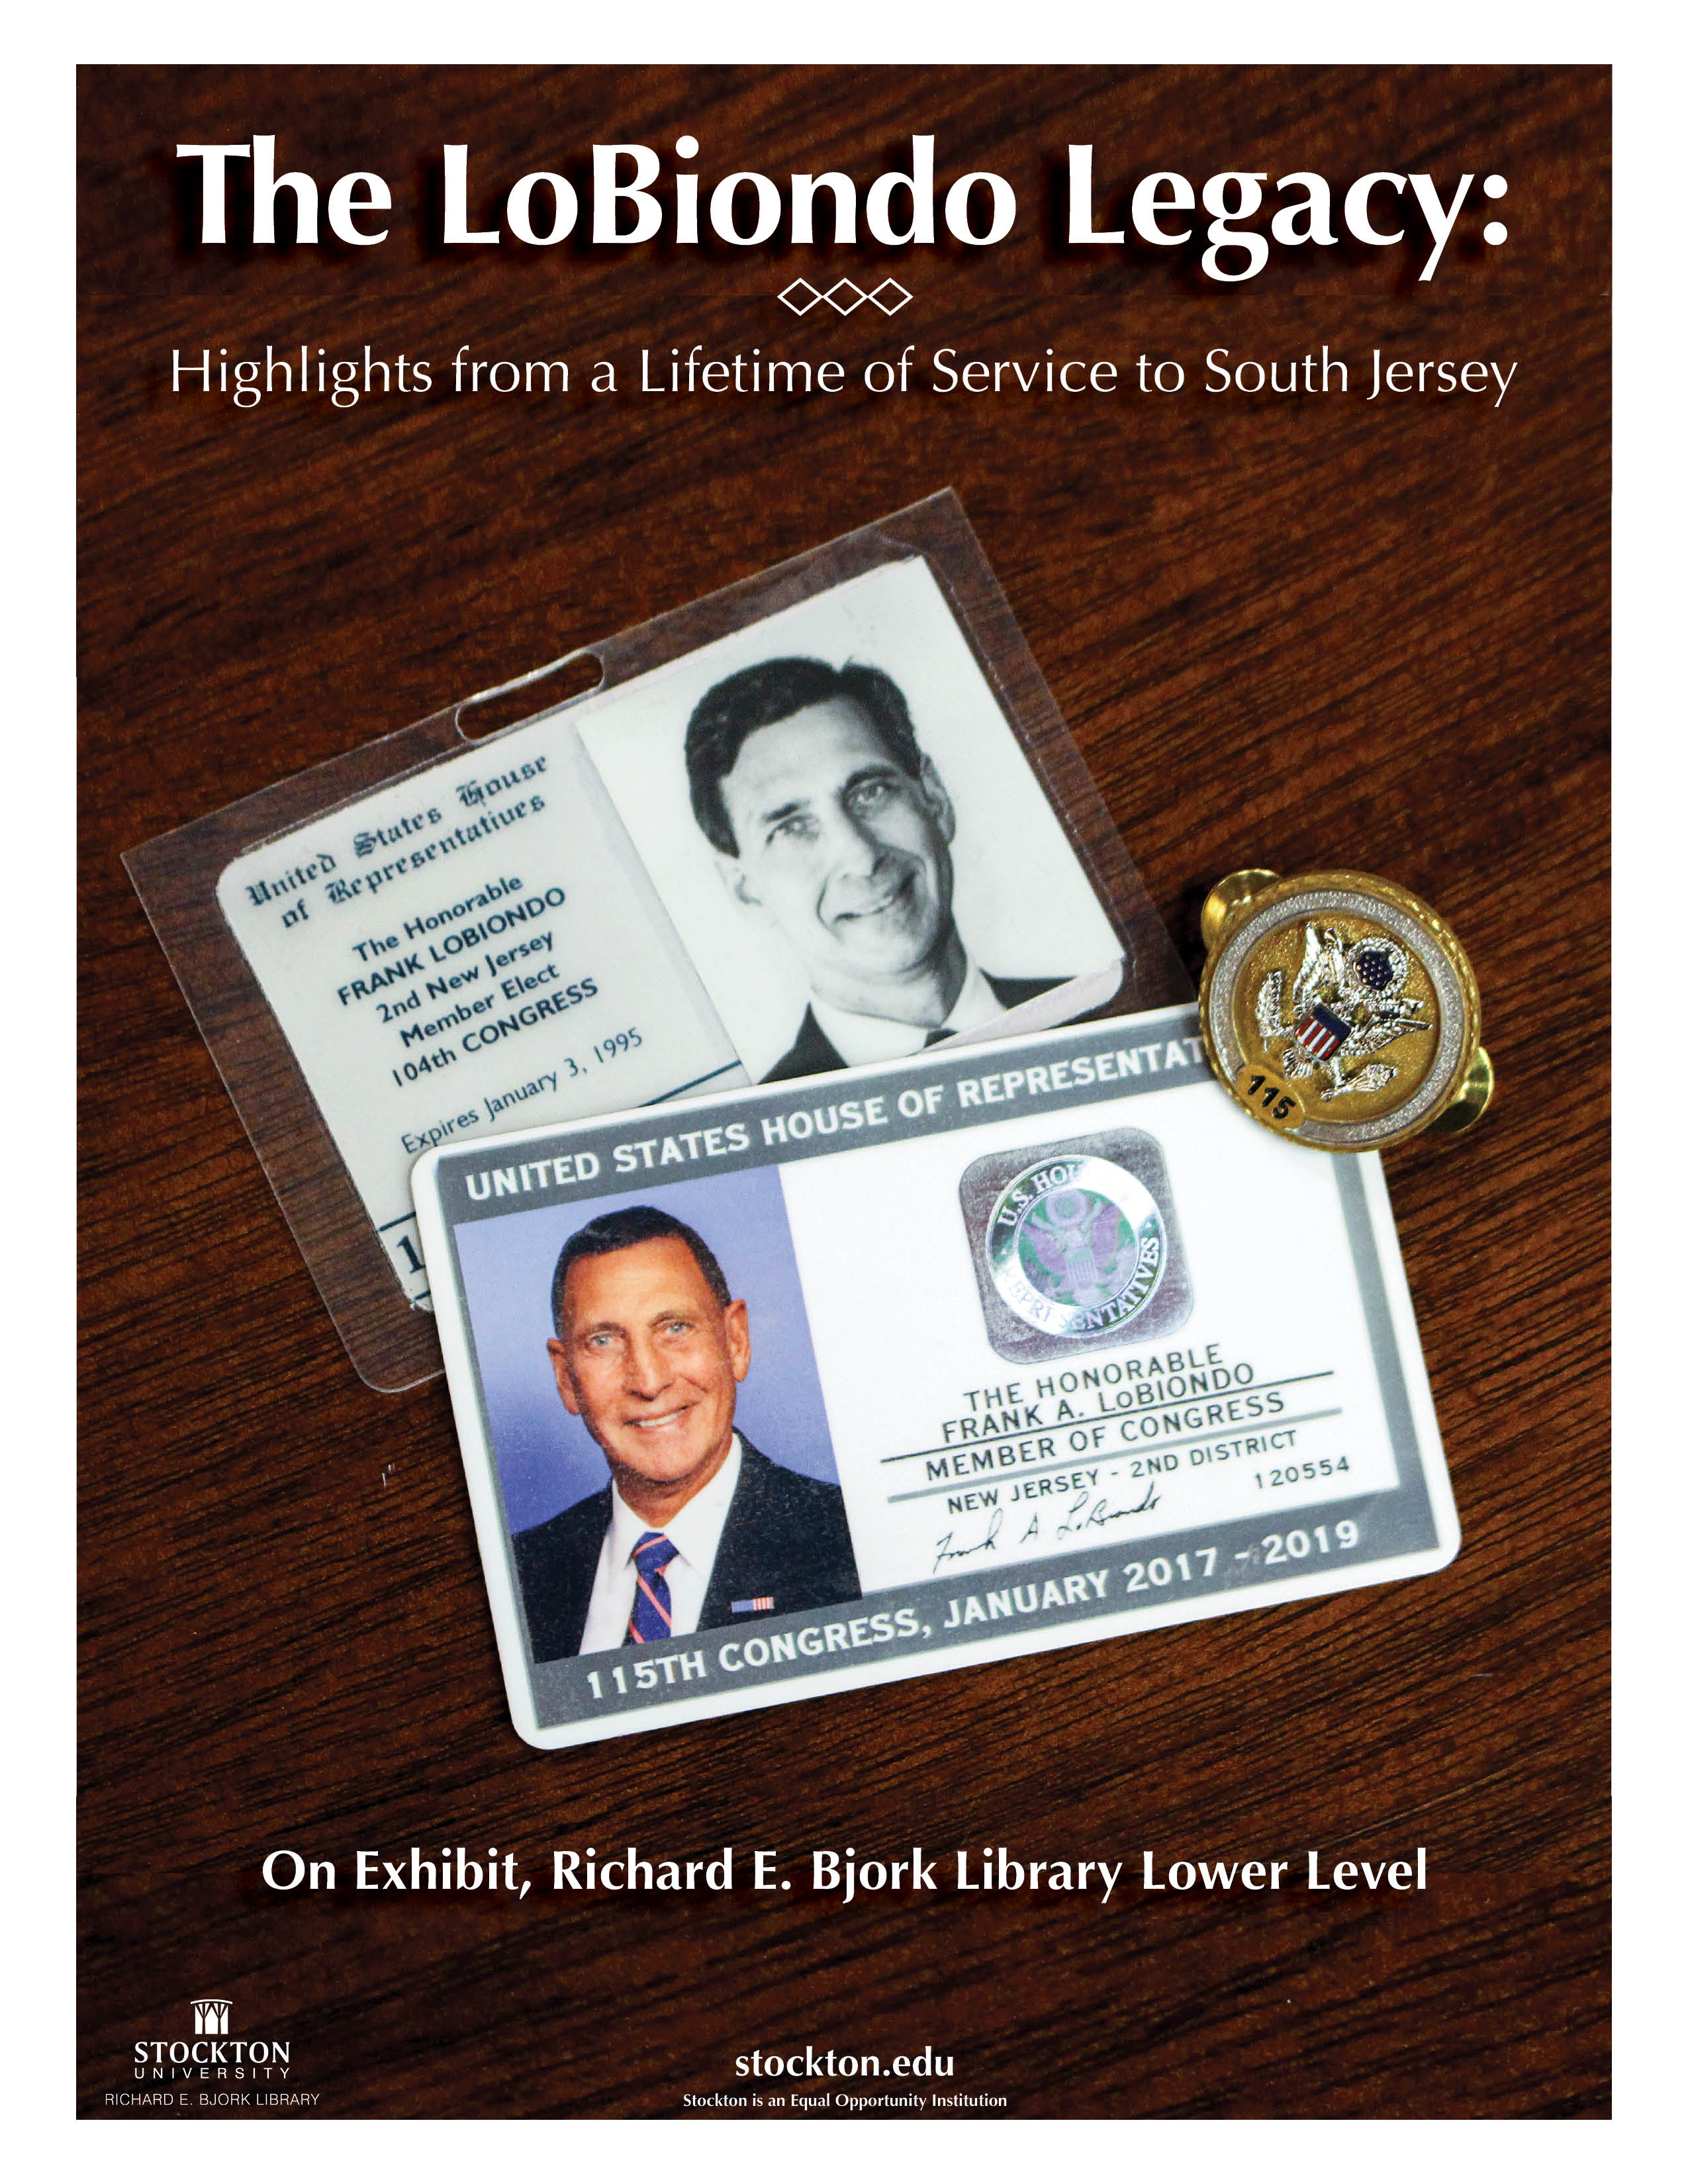 Poster with two photo identification cards for Congressman LoBiondo, one black and white and one color